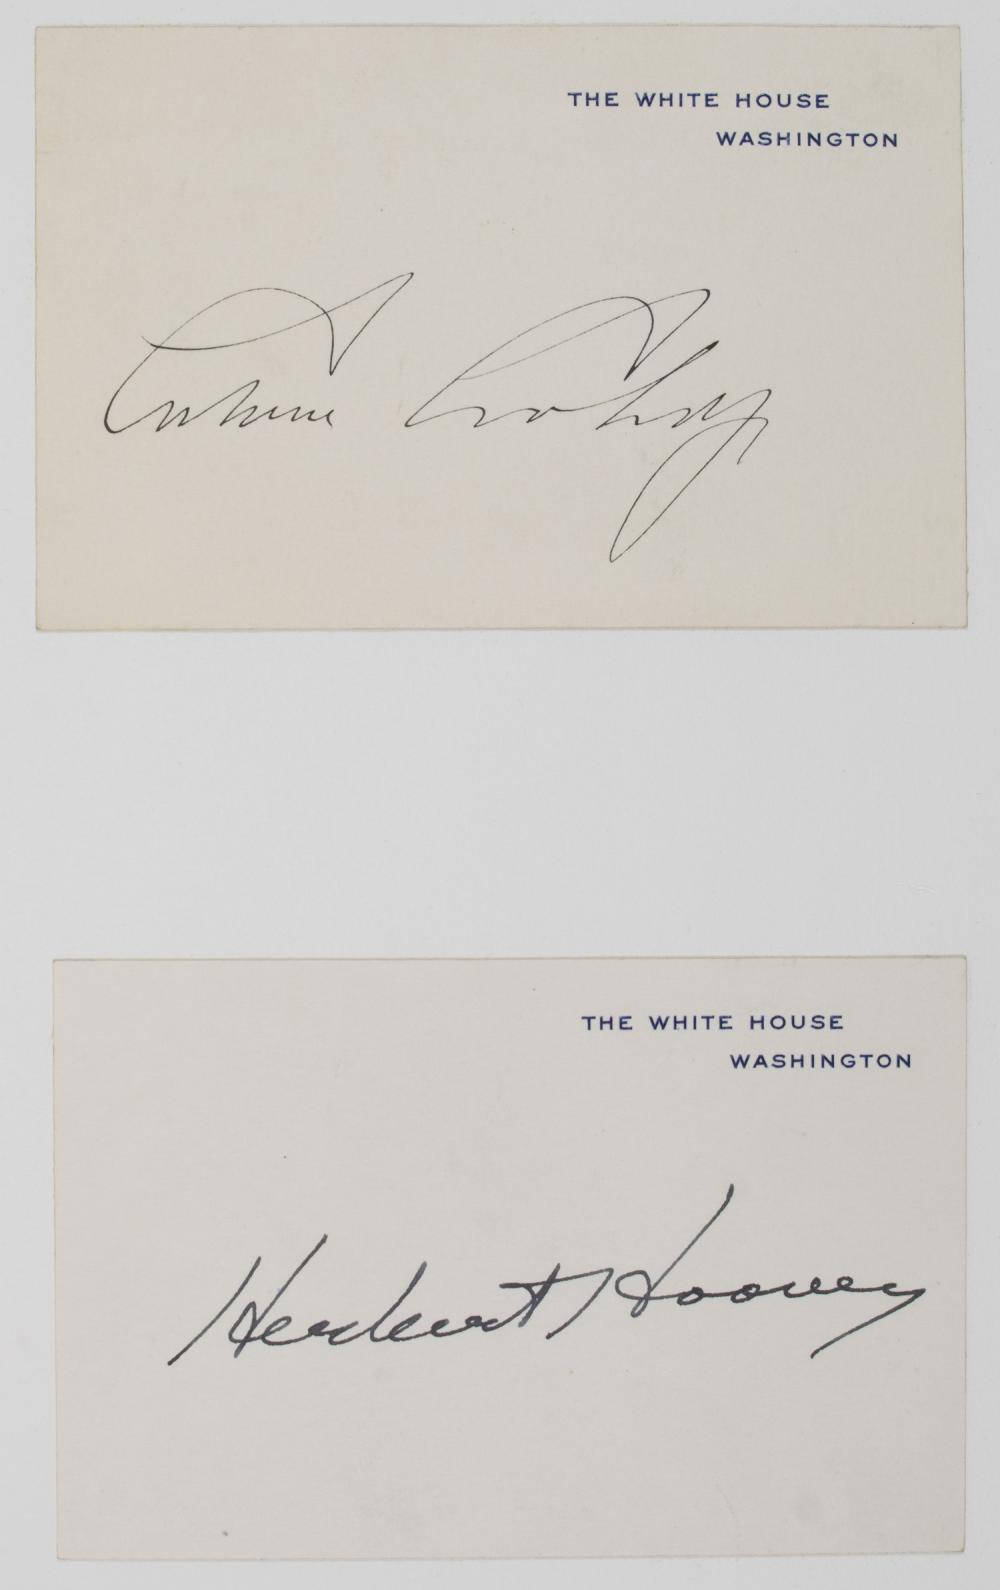 AUTOGRAPHS OF THE PRESIDENTS OF THE UNITED STATES